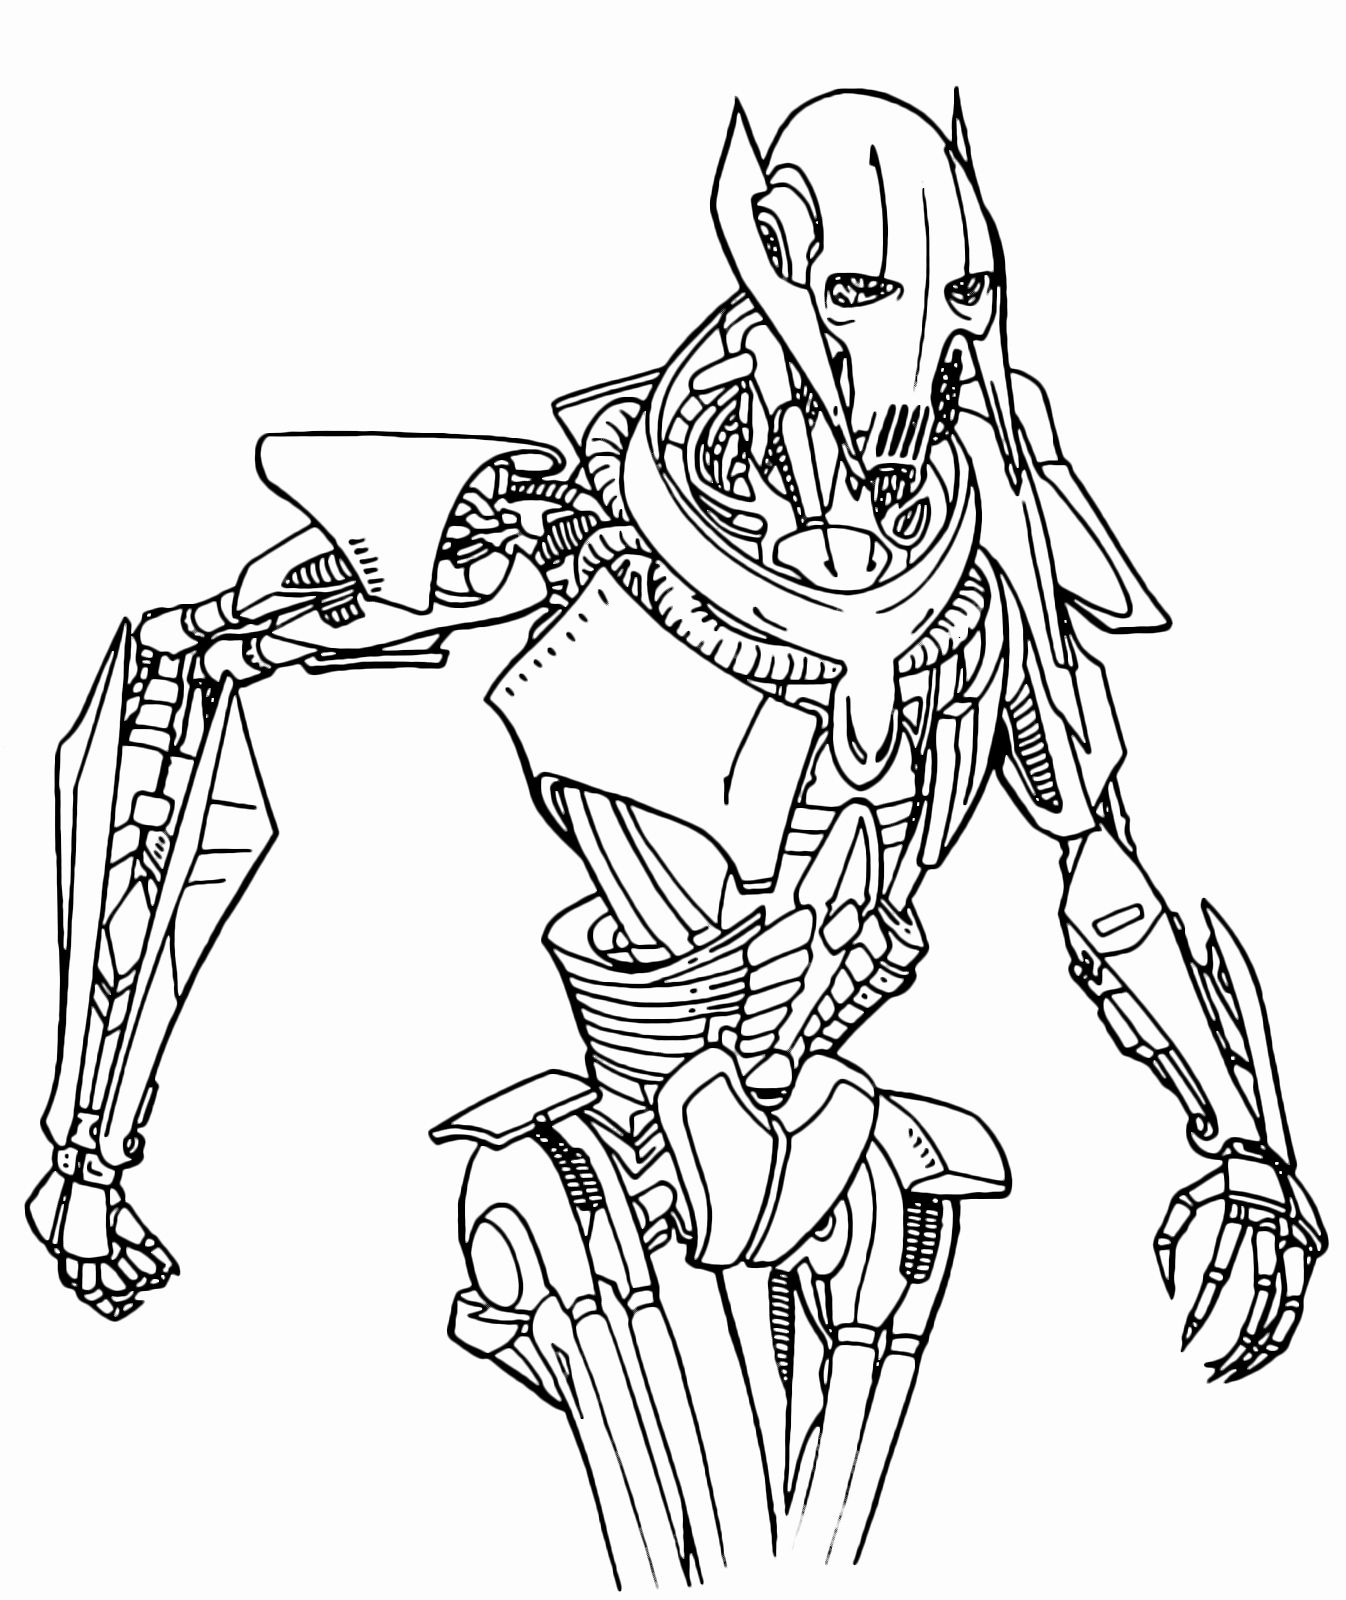 General Grievous Coloring Page Beautiful Star Wars General Grievous Is Approaching Menacingly Candy Coloring Pages Coloring Pages Monster Coloring Pages